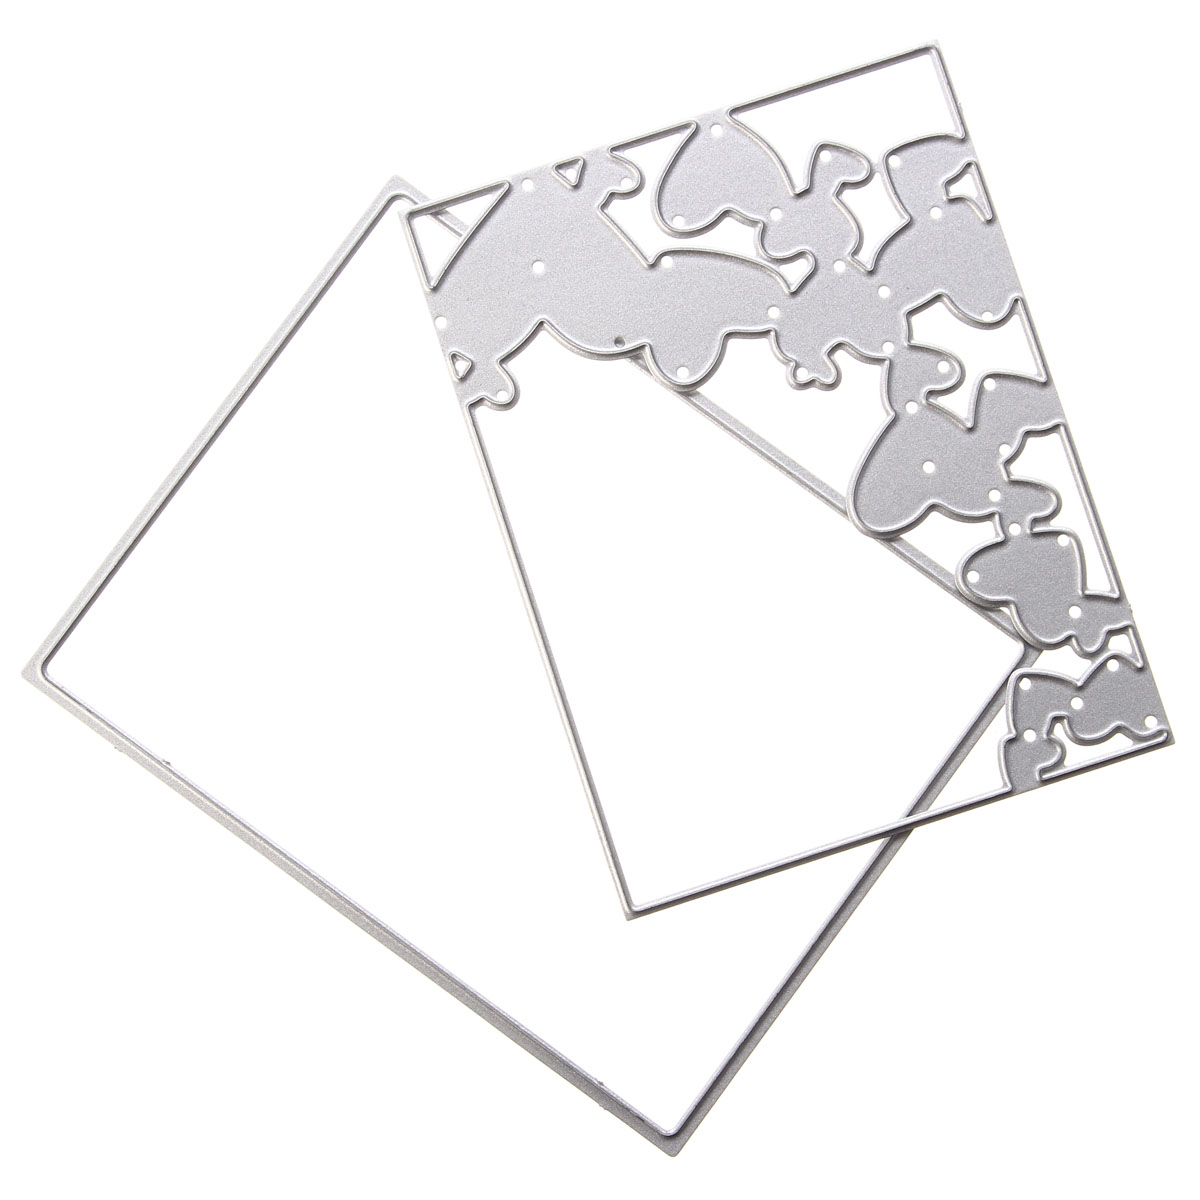 Border Heart Metal Cutting Dies Scrapbook Album Paper Card Embossing Craft